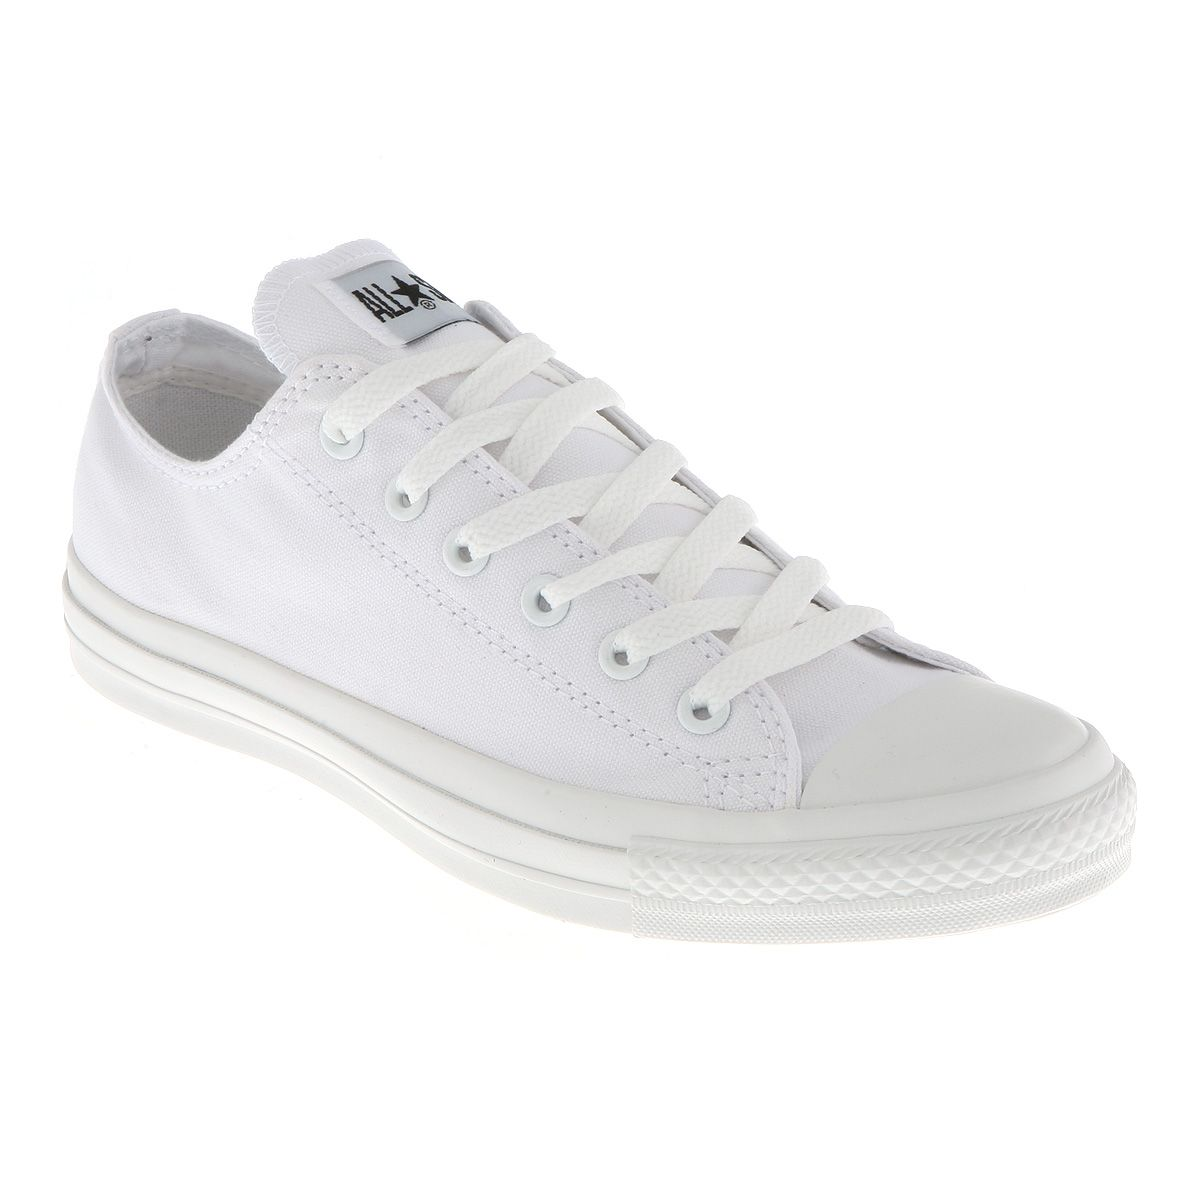 Converse All Star Ox Low White Mono Canvas Exclusive Trainers Shoes